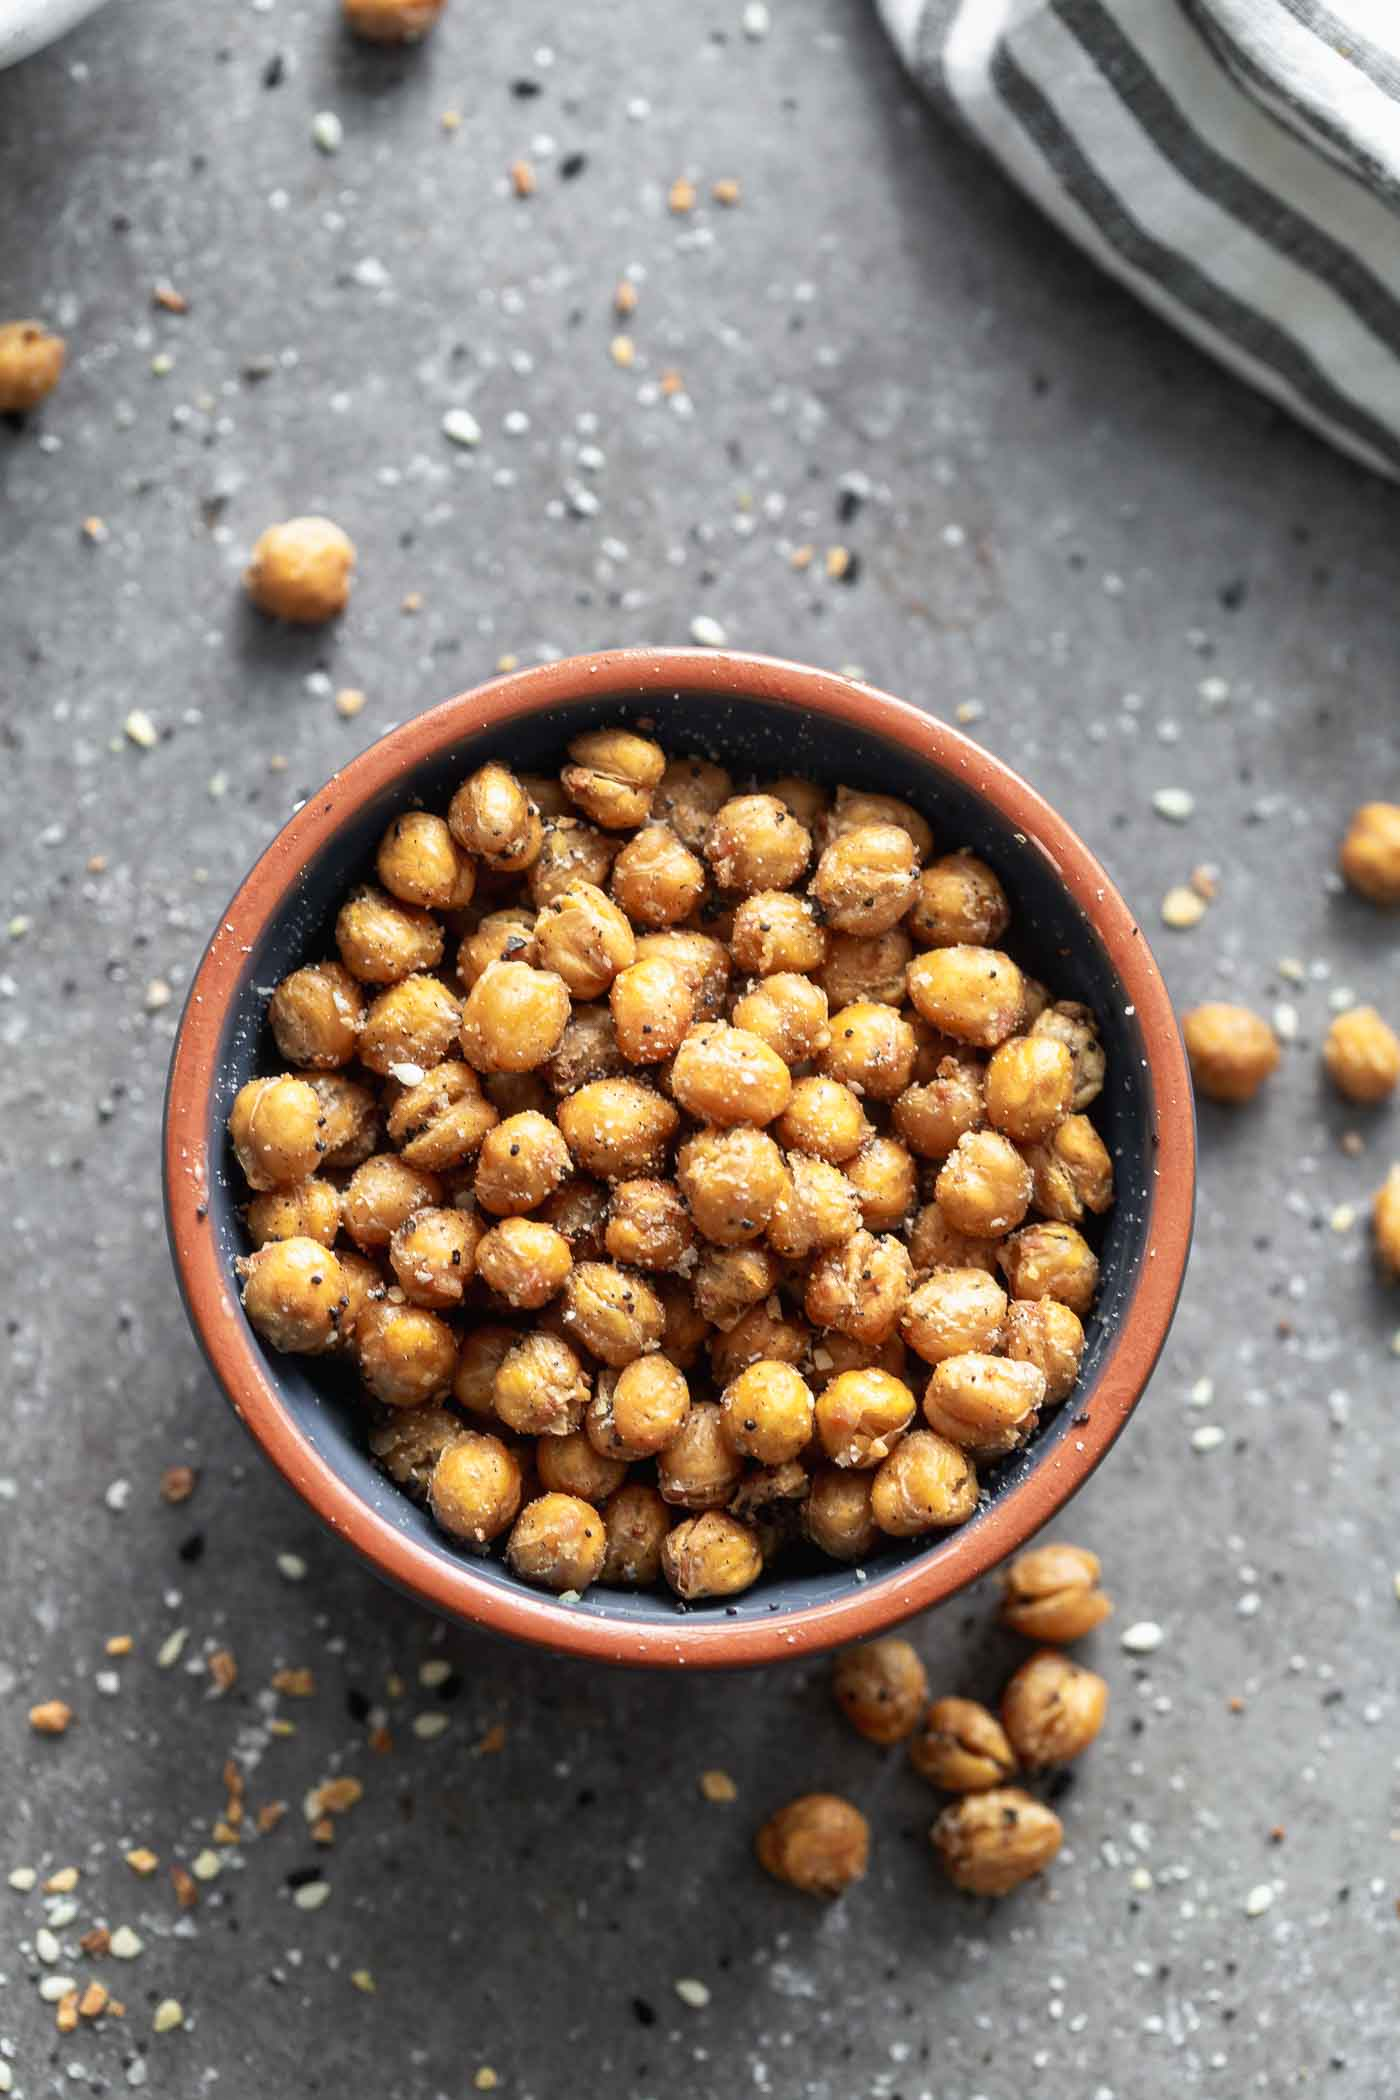 Crispy Everything Bagel Chickpeas are the perfect snack! They're covered in ground up everything bagel seasoning, tossed with olive oil and baked until golden brown and crispy. Store them in an airtight container and pull them out whenever you feel the need to snack!